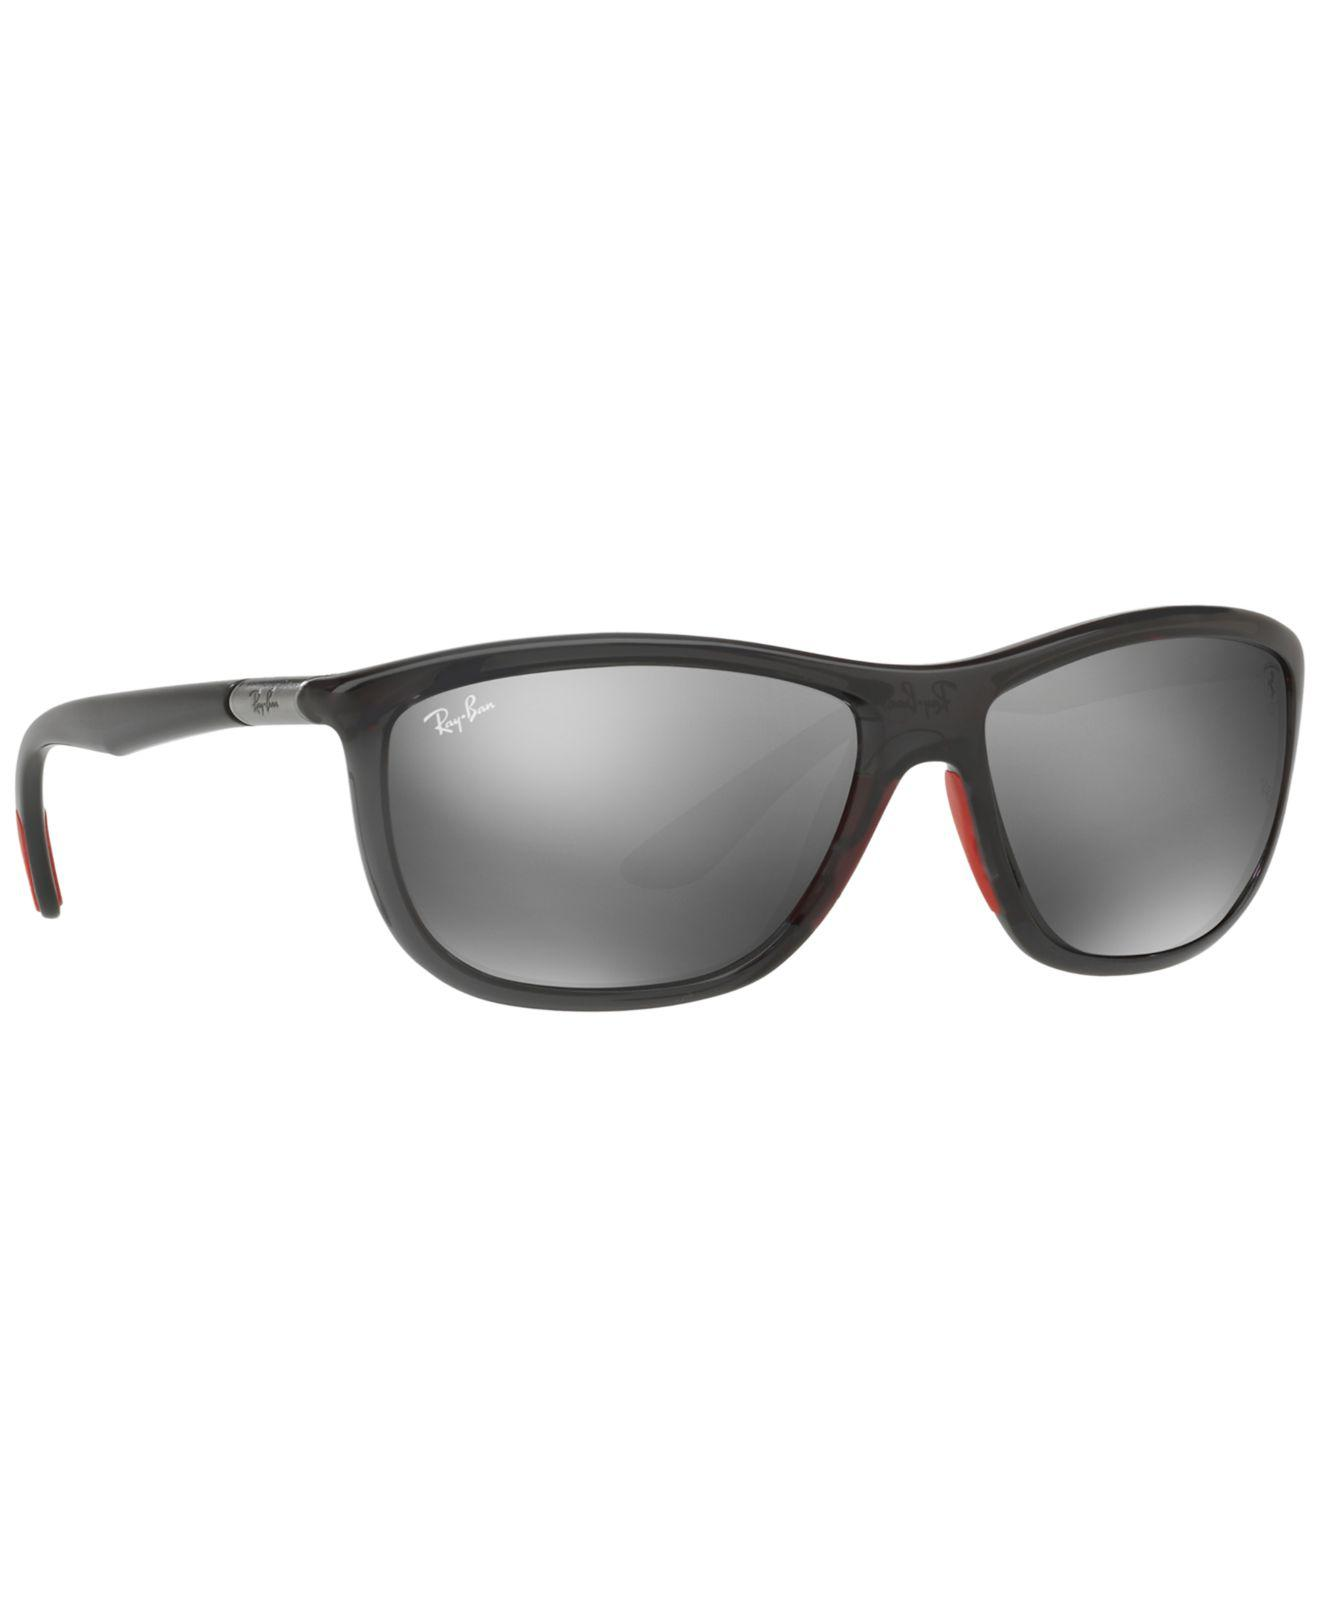 007fb857a6 Lyst - Ray-Ban Sunglasses